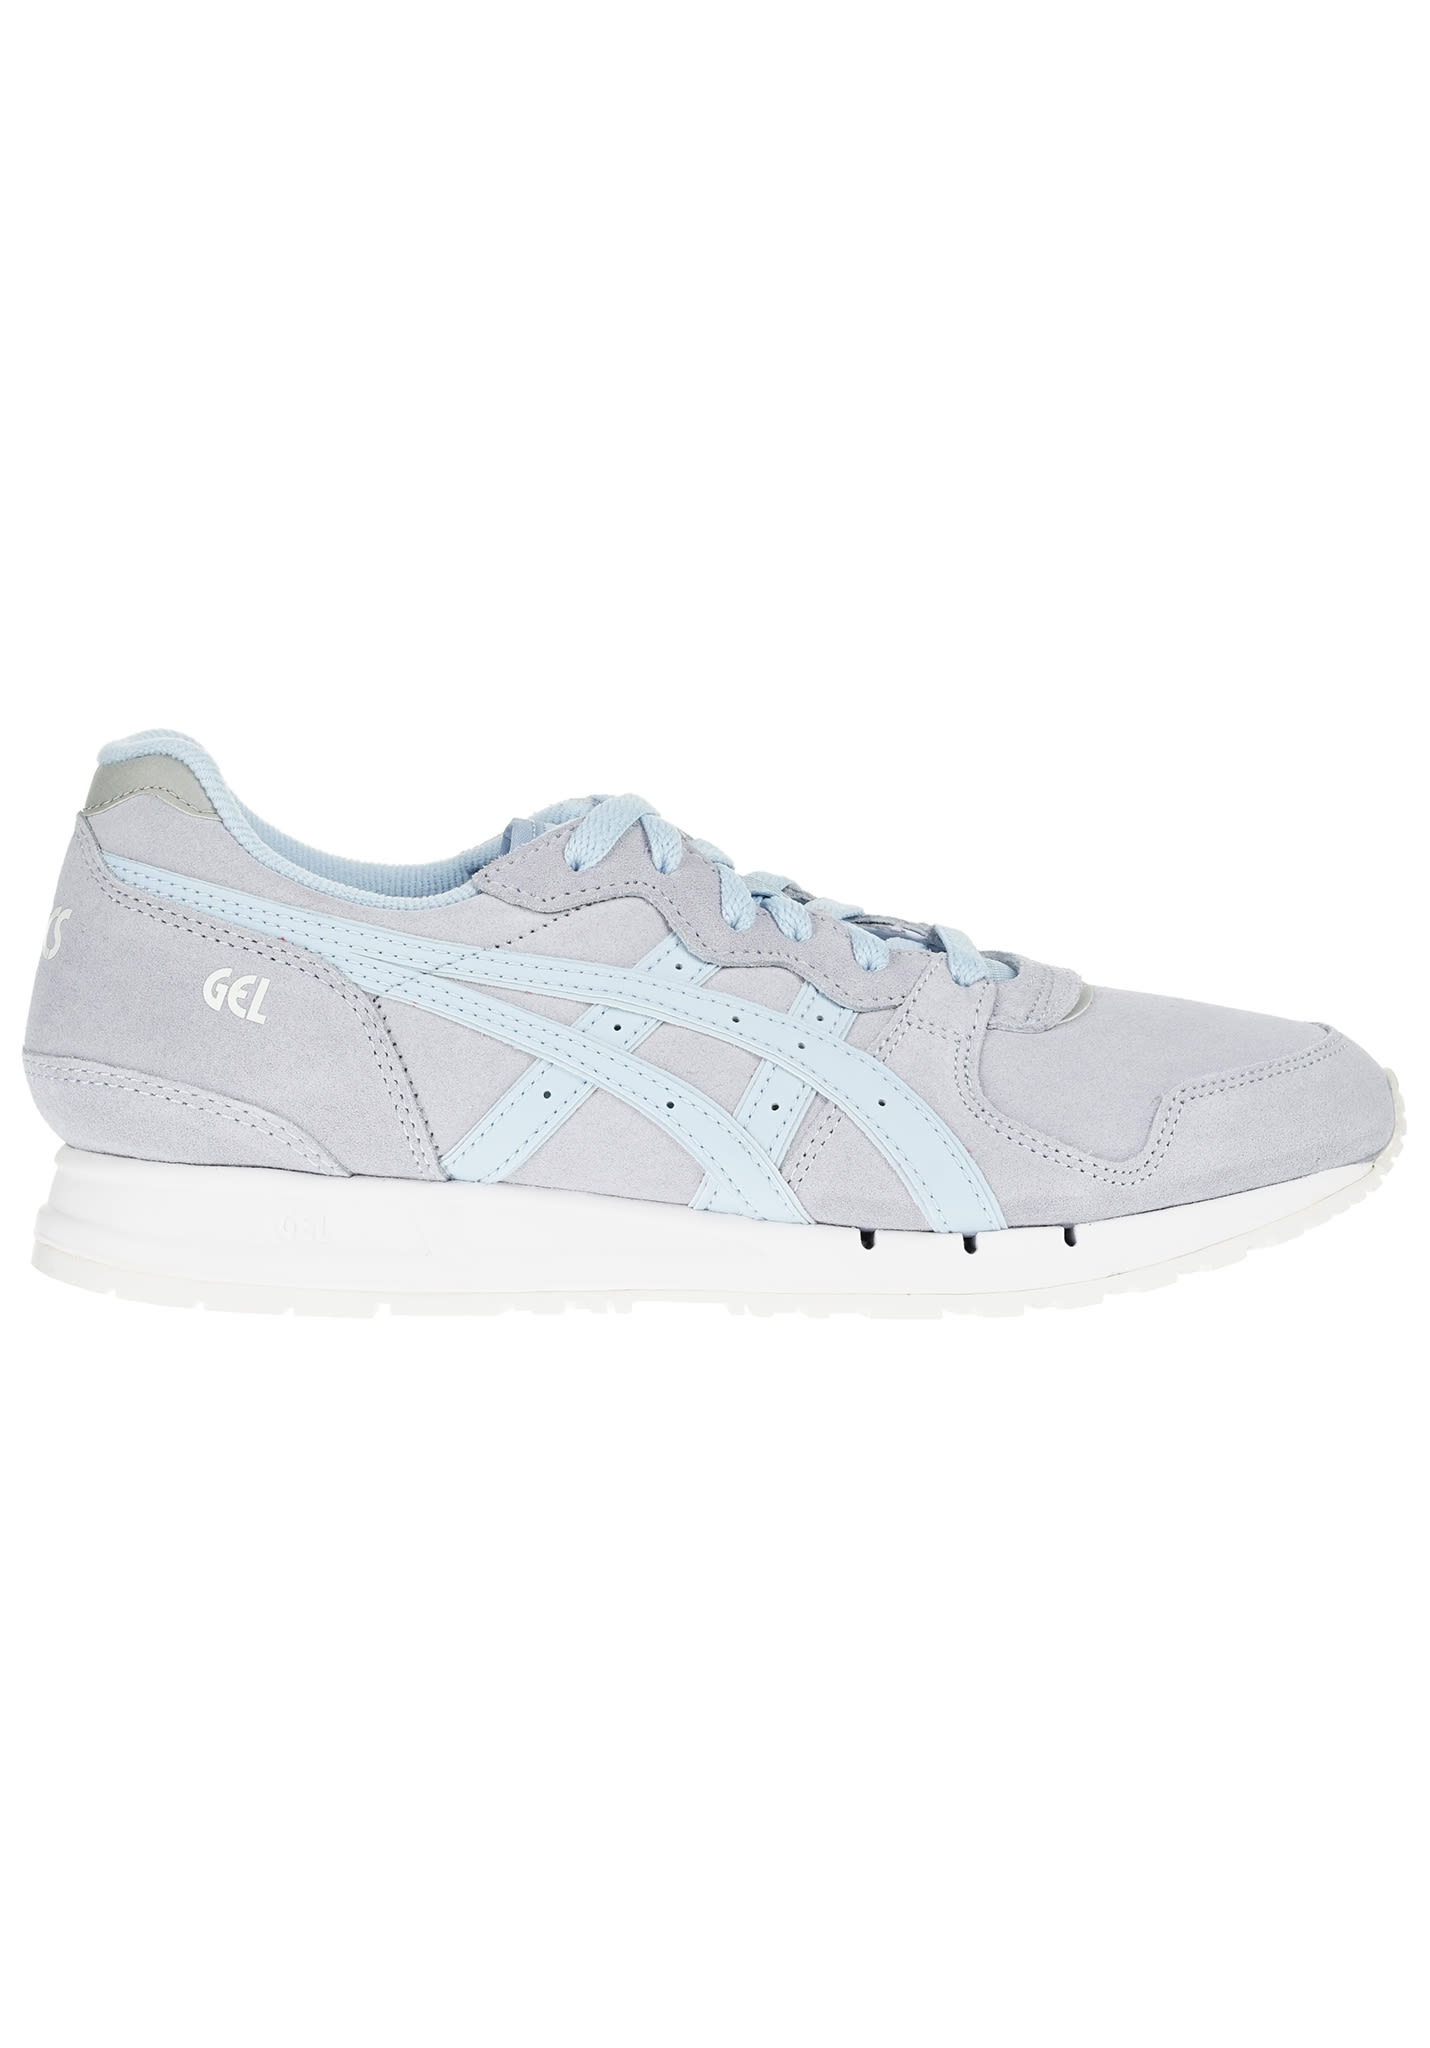 ASICS Tiger Gel-Movimentum - Sneaker für Damen - Grau